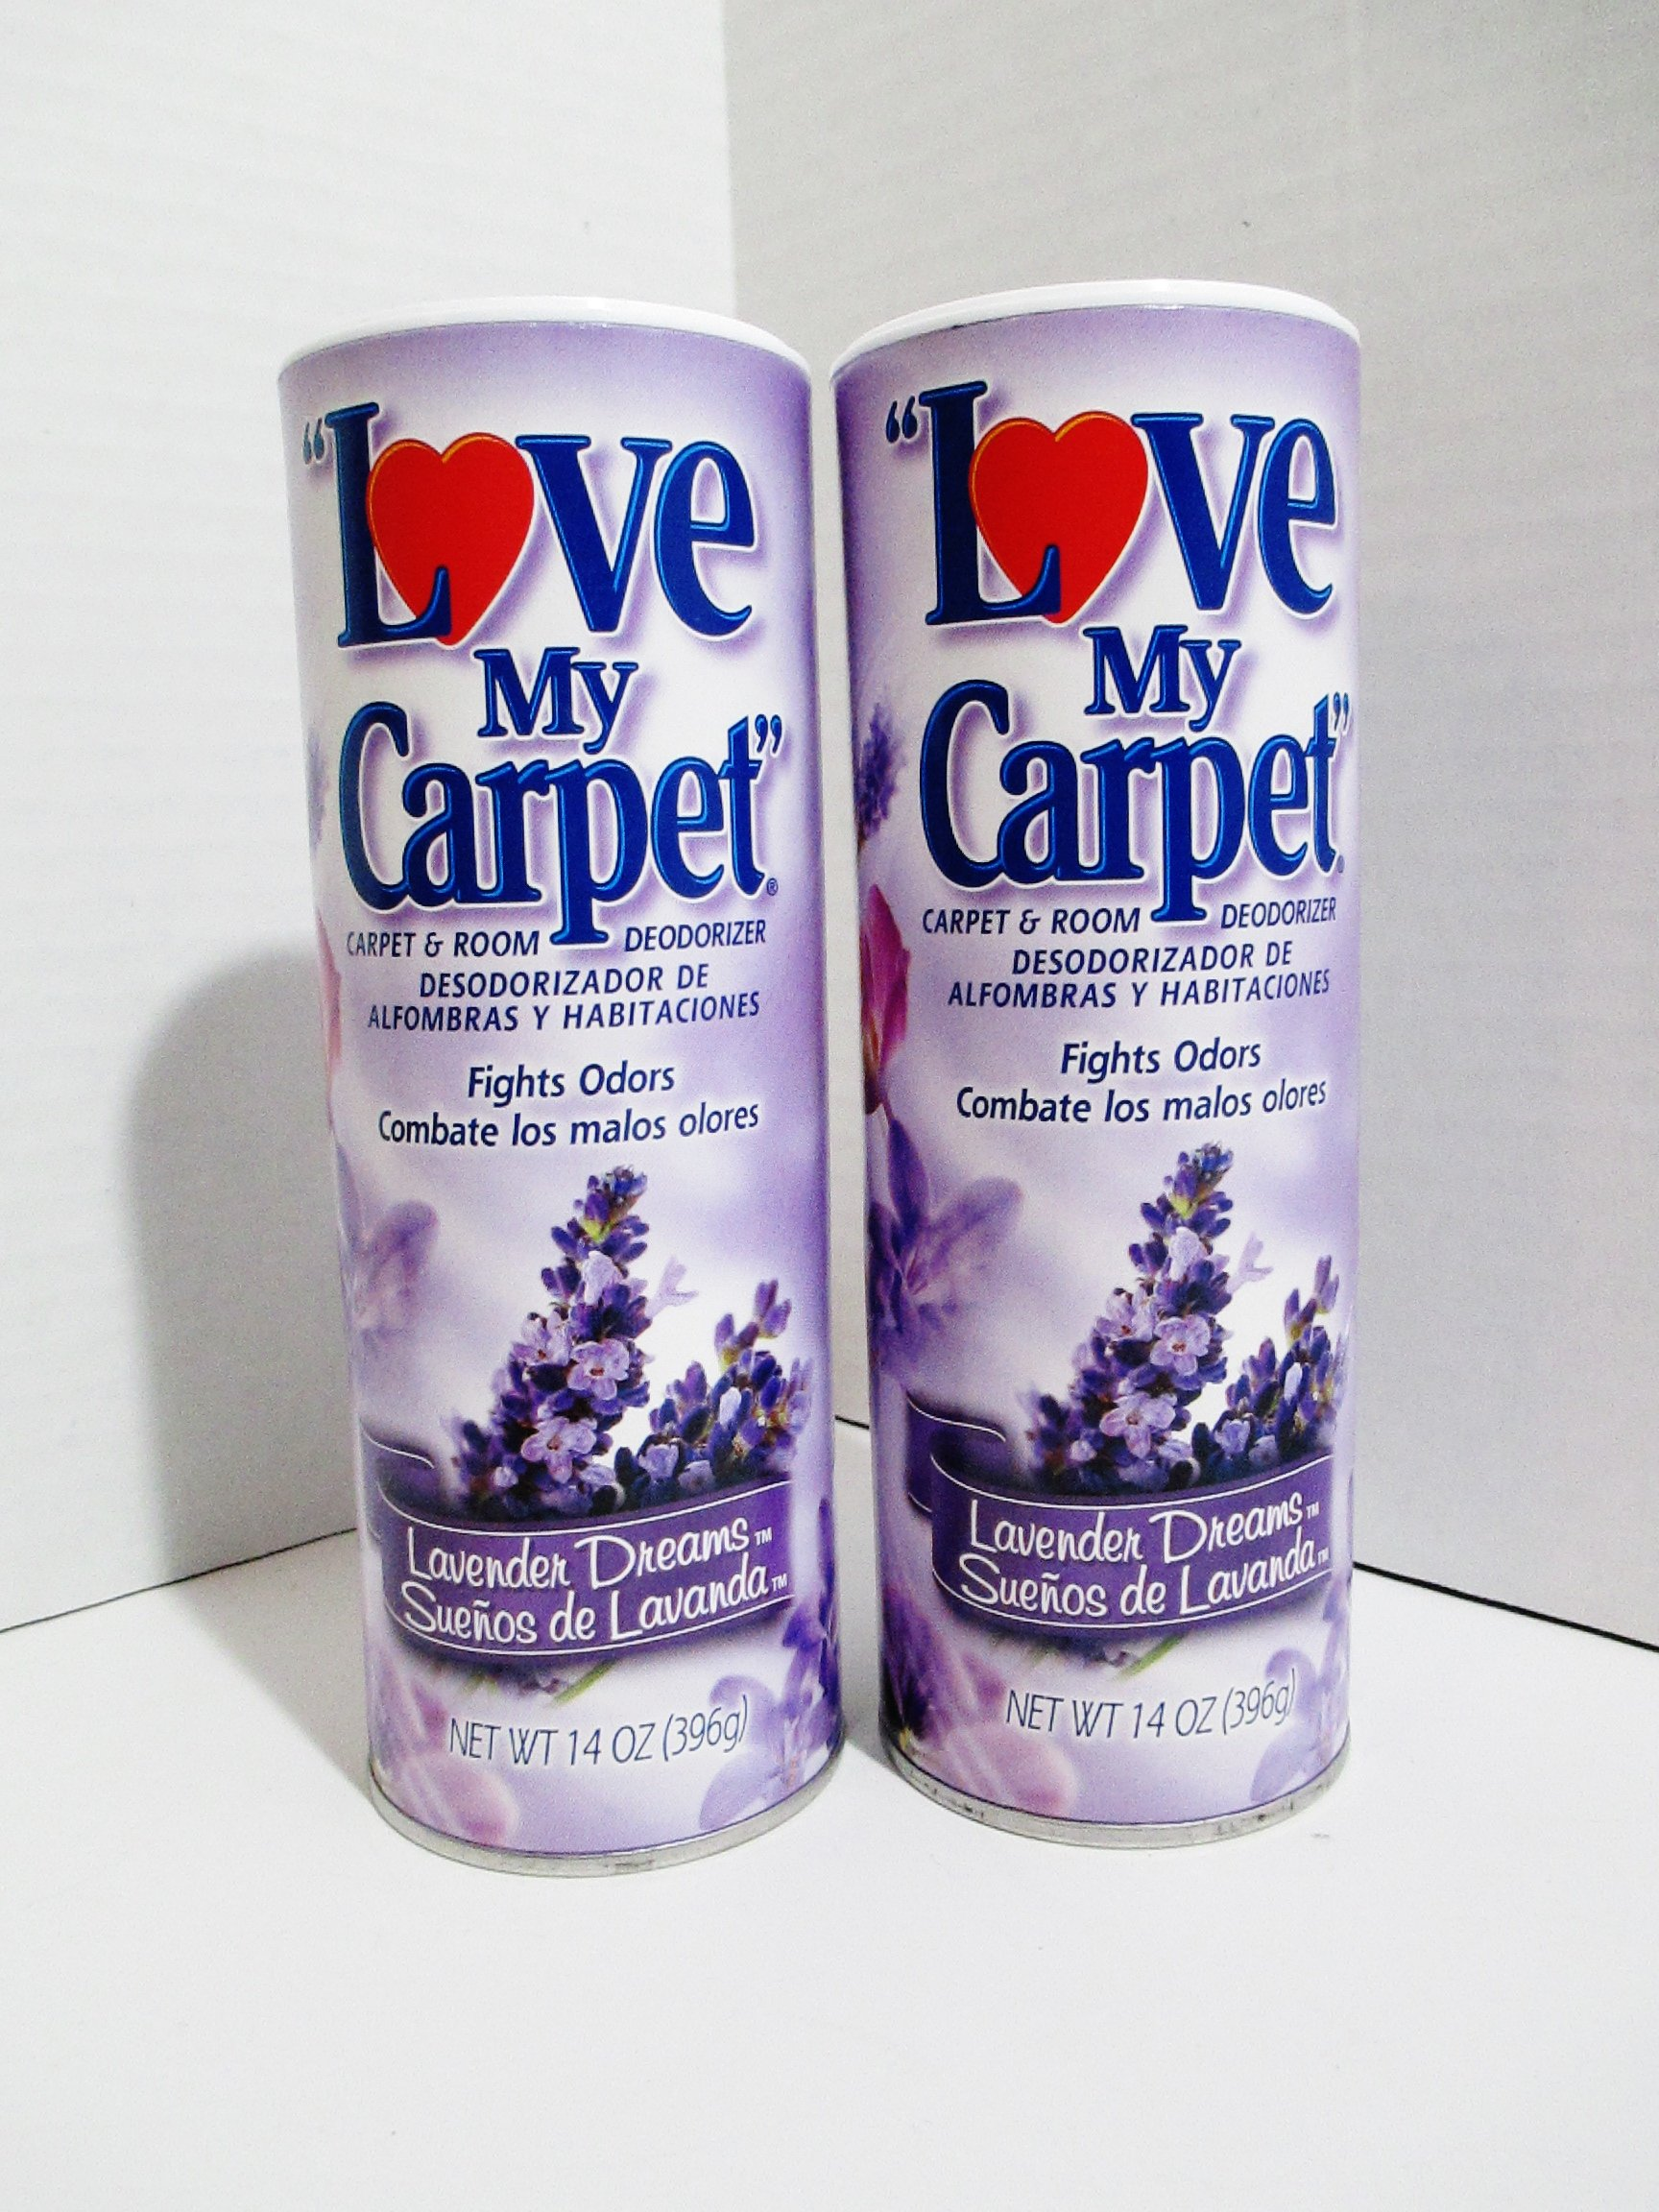 Love My Carpet - 2 pack - Lavender Dreams Carpet & Room Deodorizer